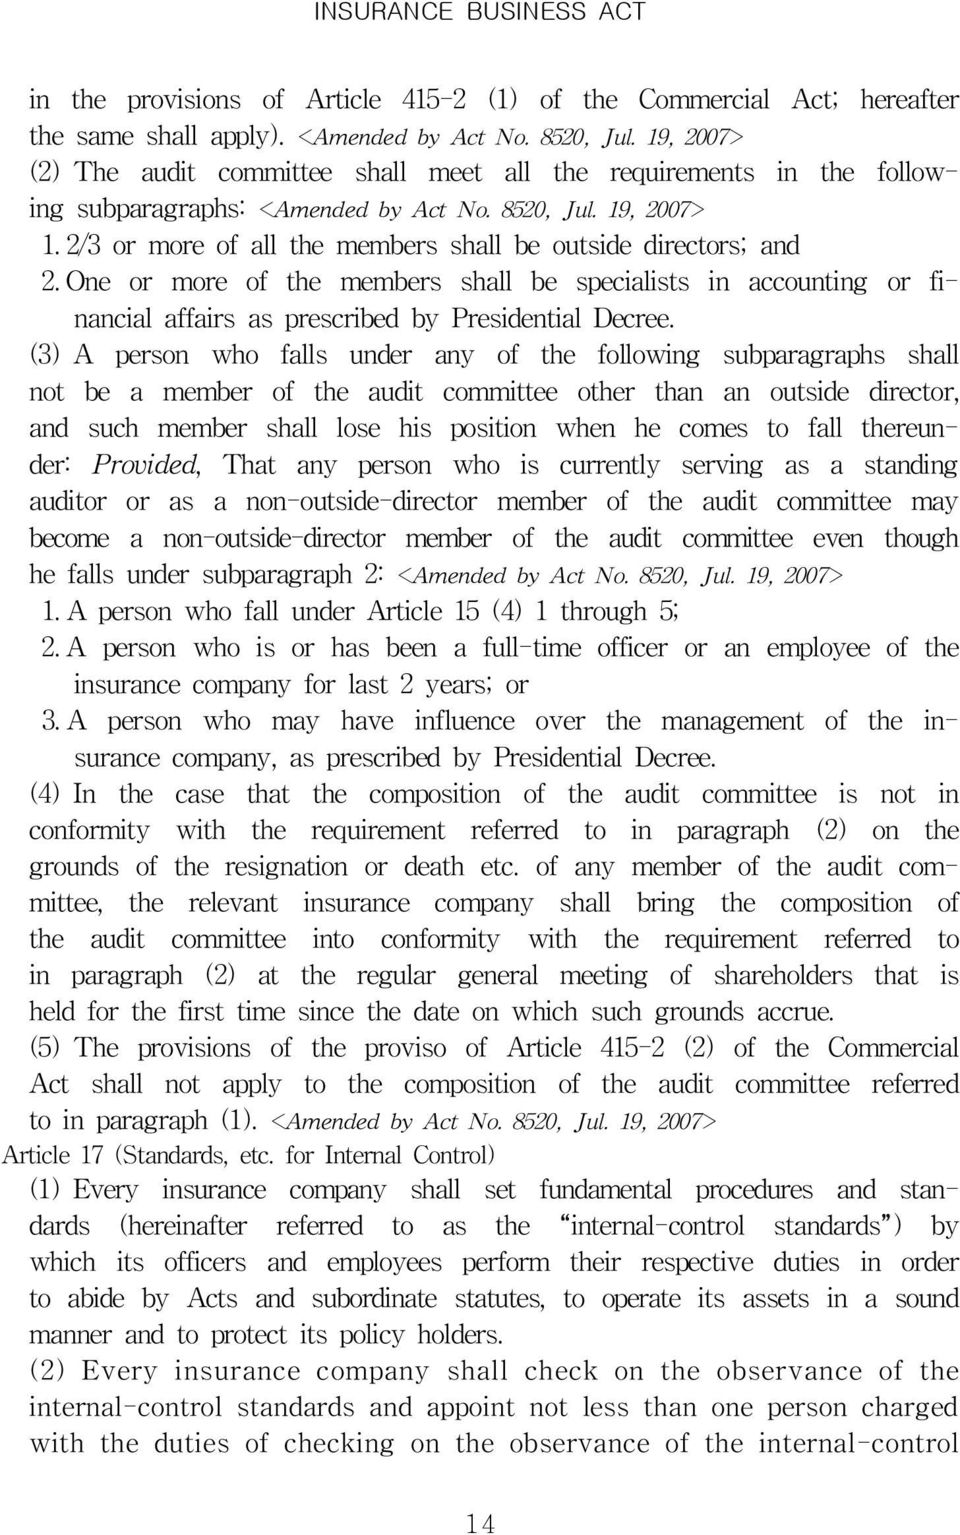 2/3 or more of all the members shall be outside directors; and 2. One or more of the members shall be specialists in accounting or financial affairs as prescribed by Presidential Decree.